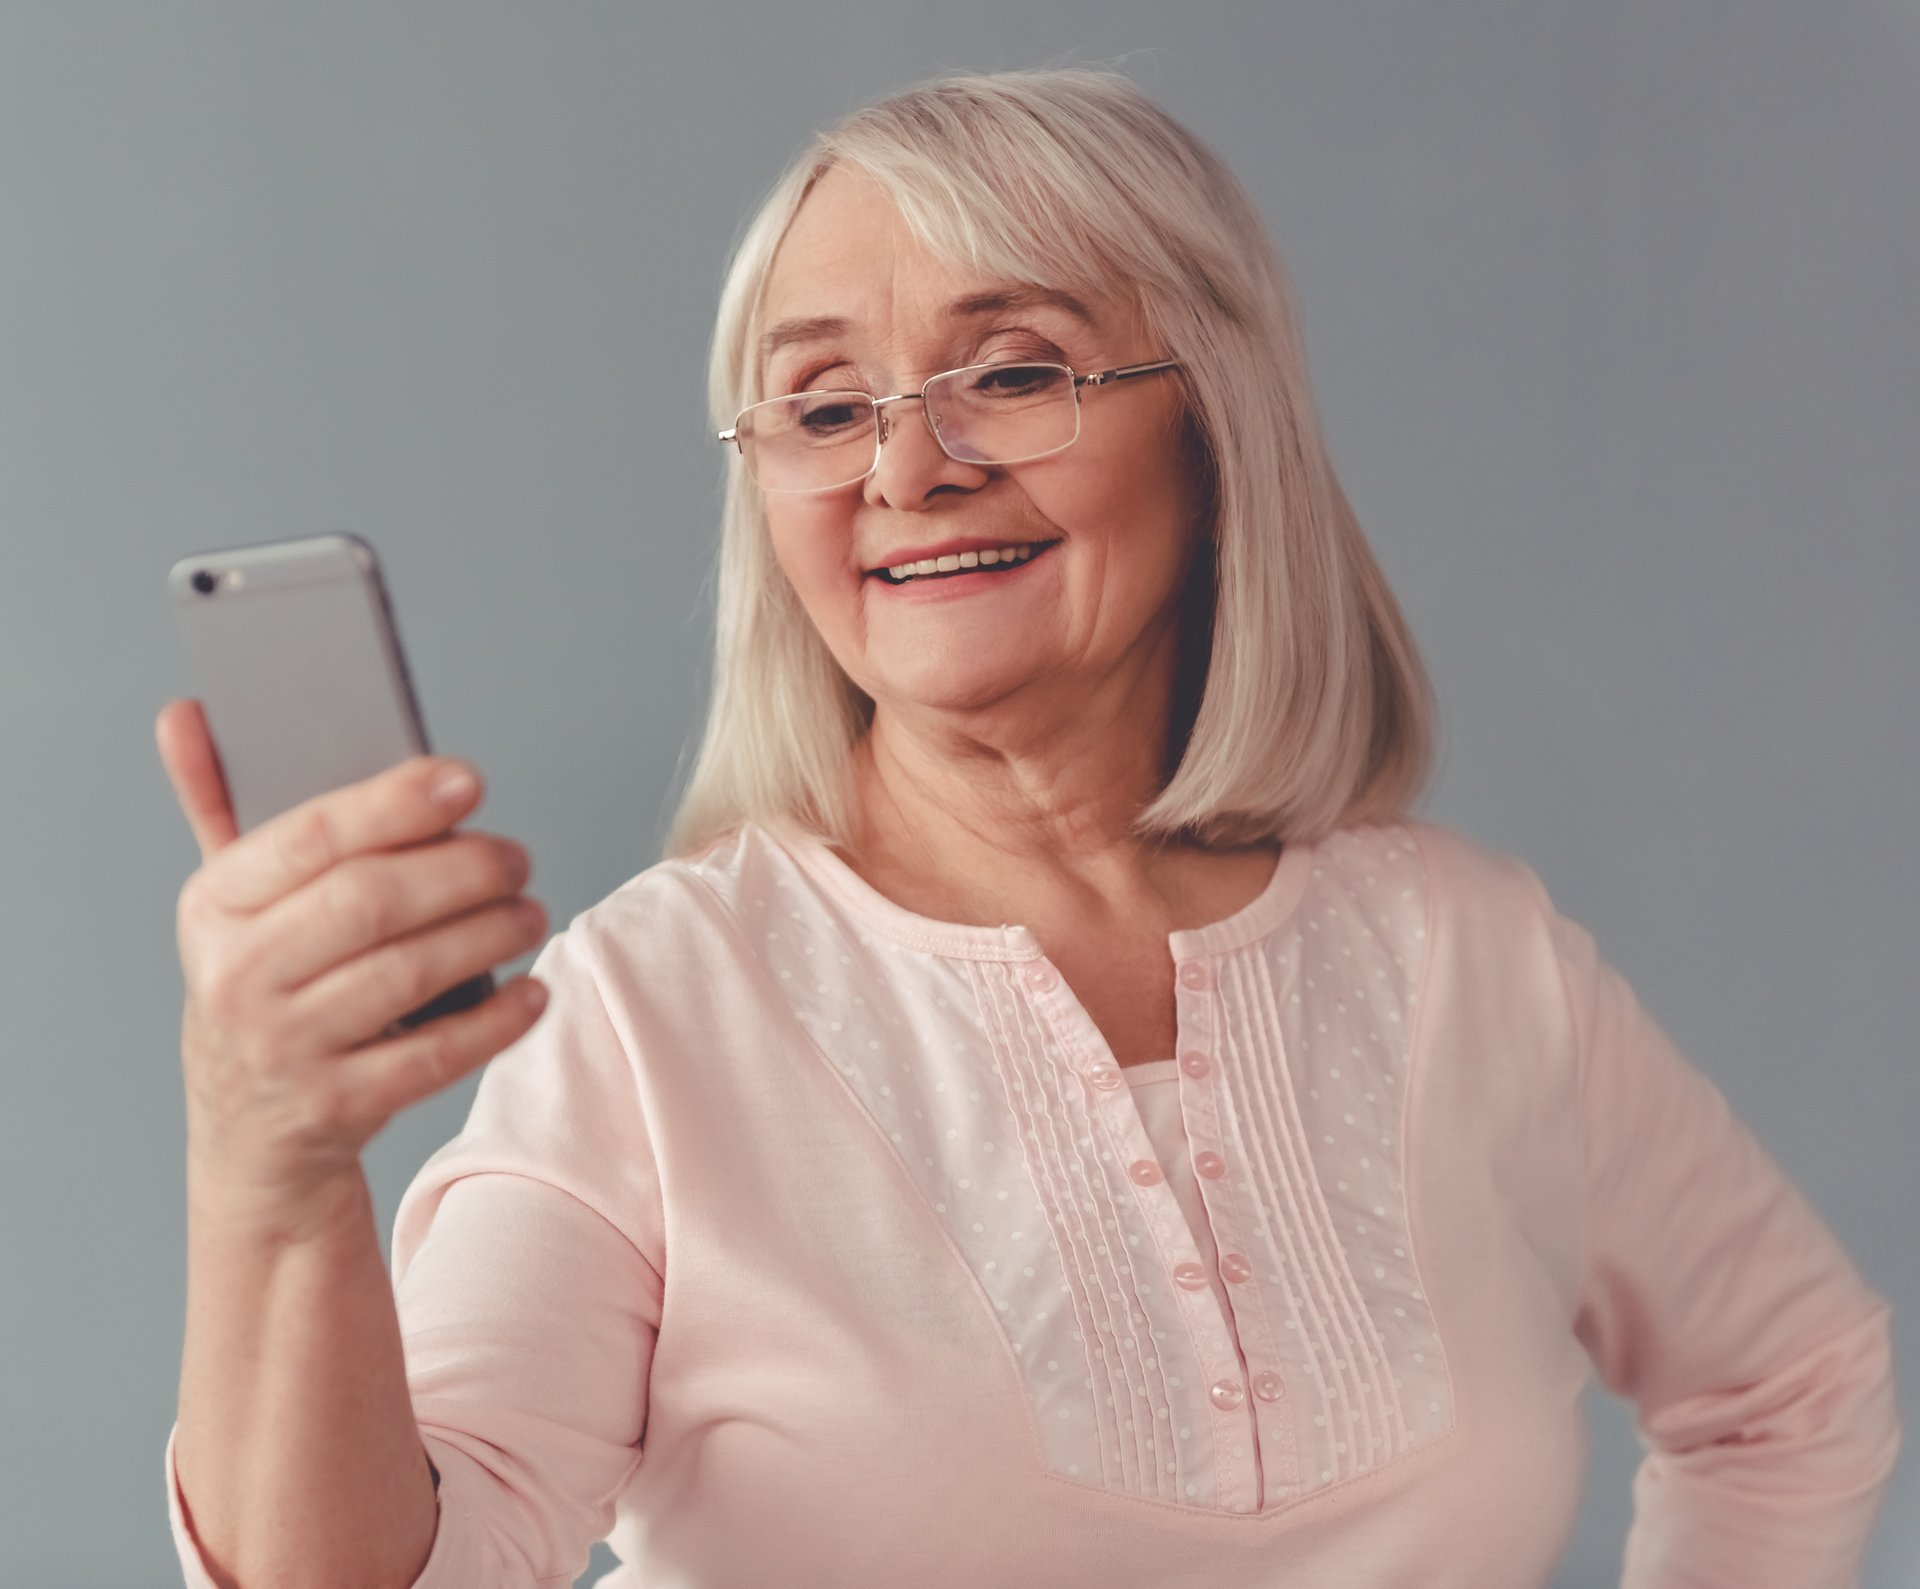 An older woman in glasses smiles while holding a smartphone